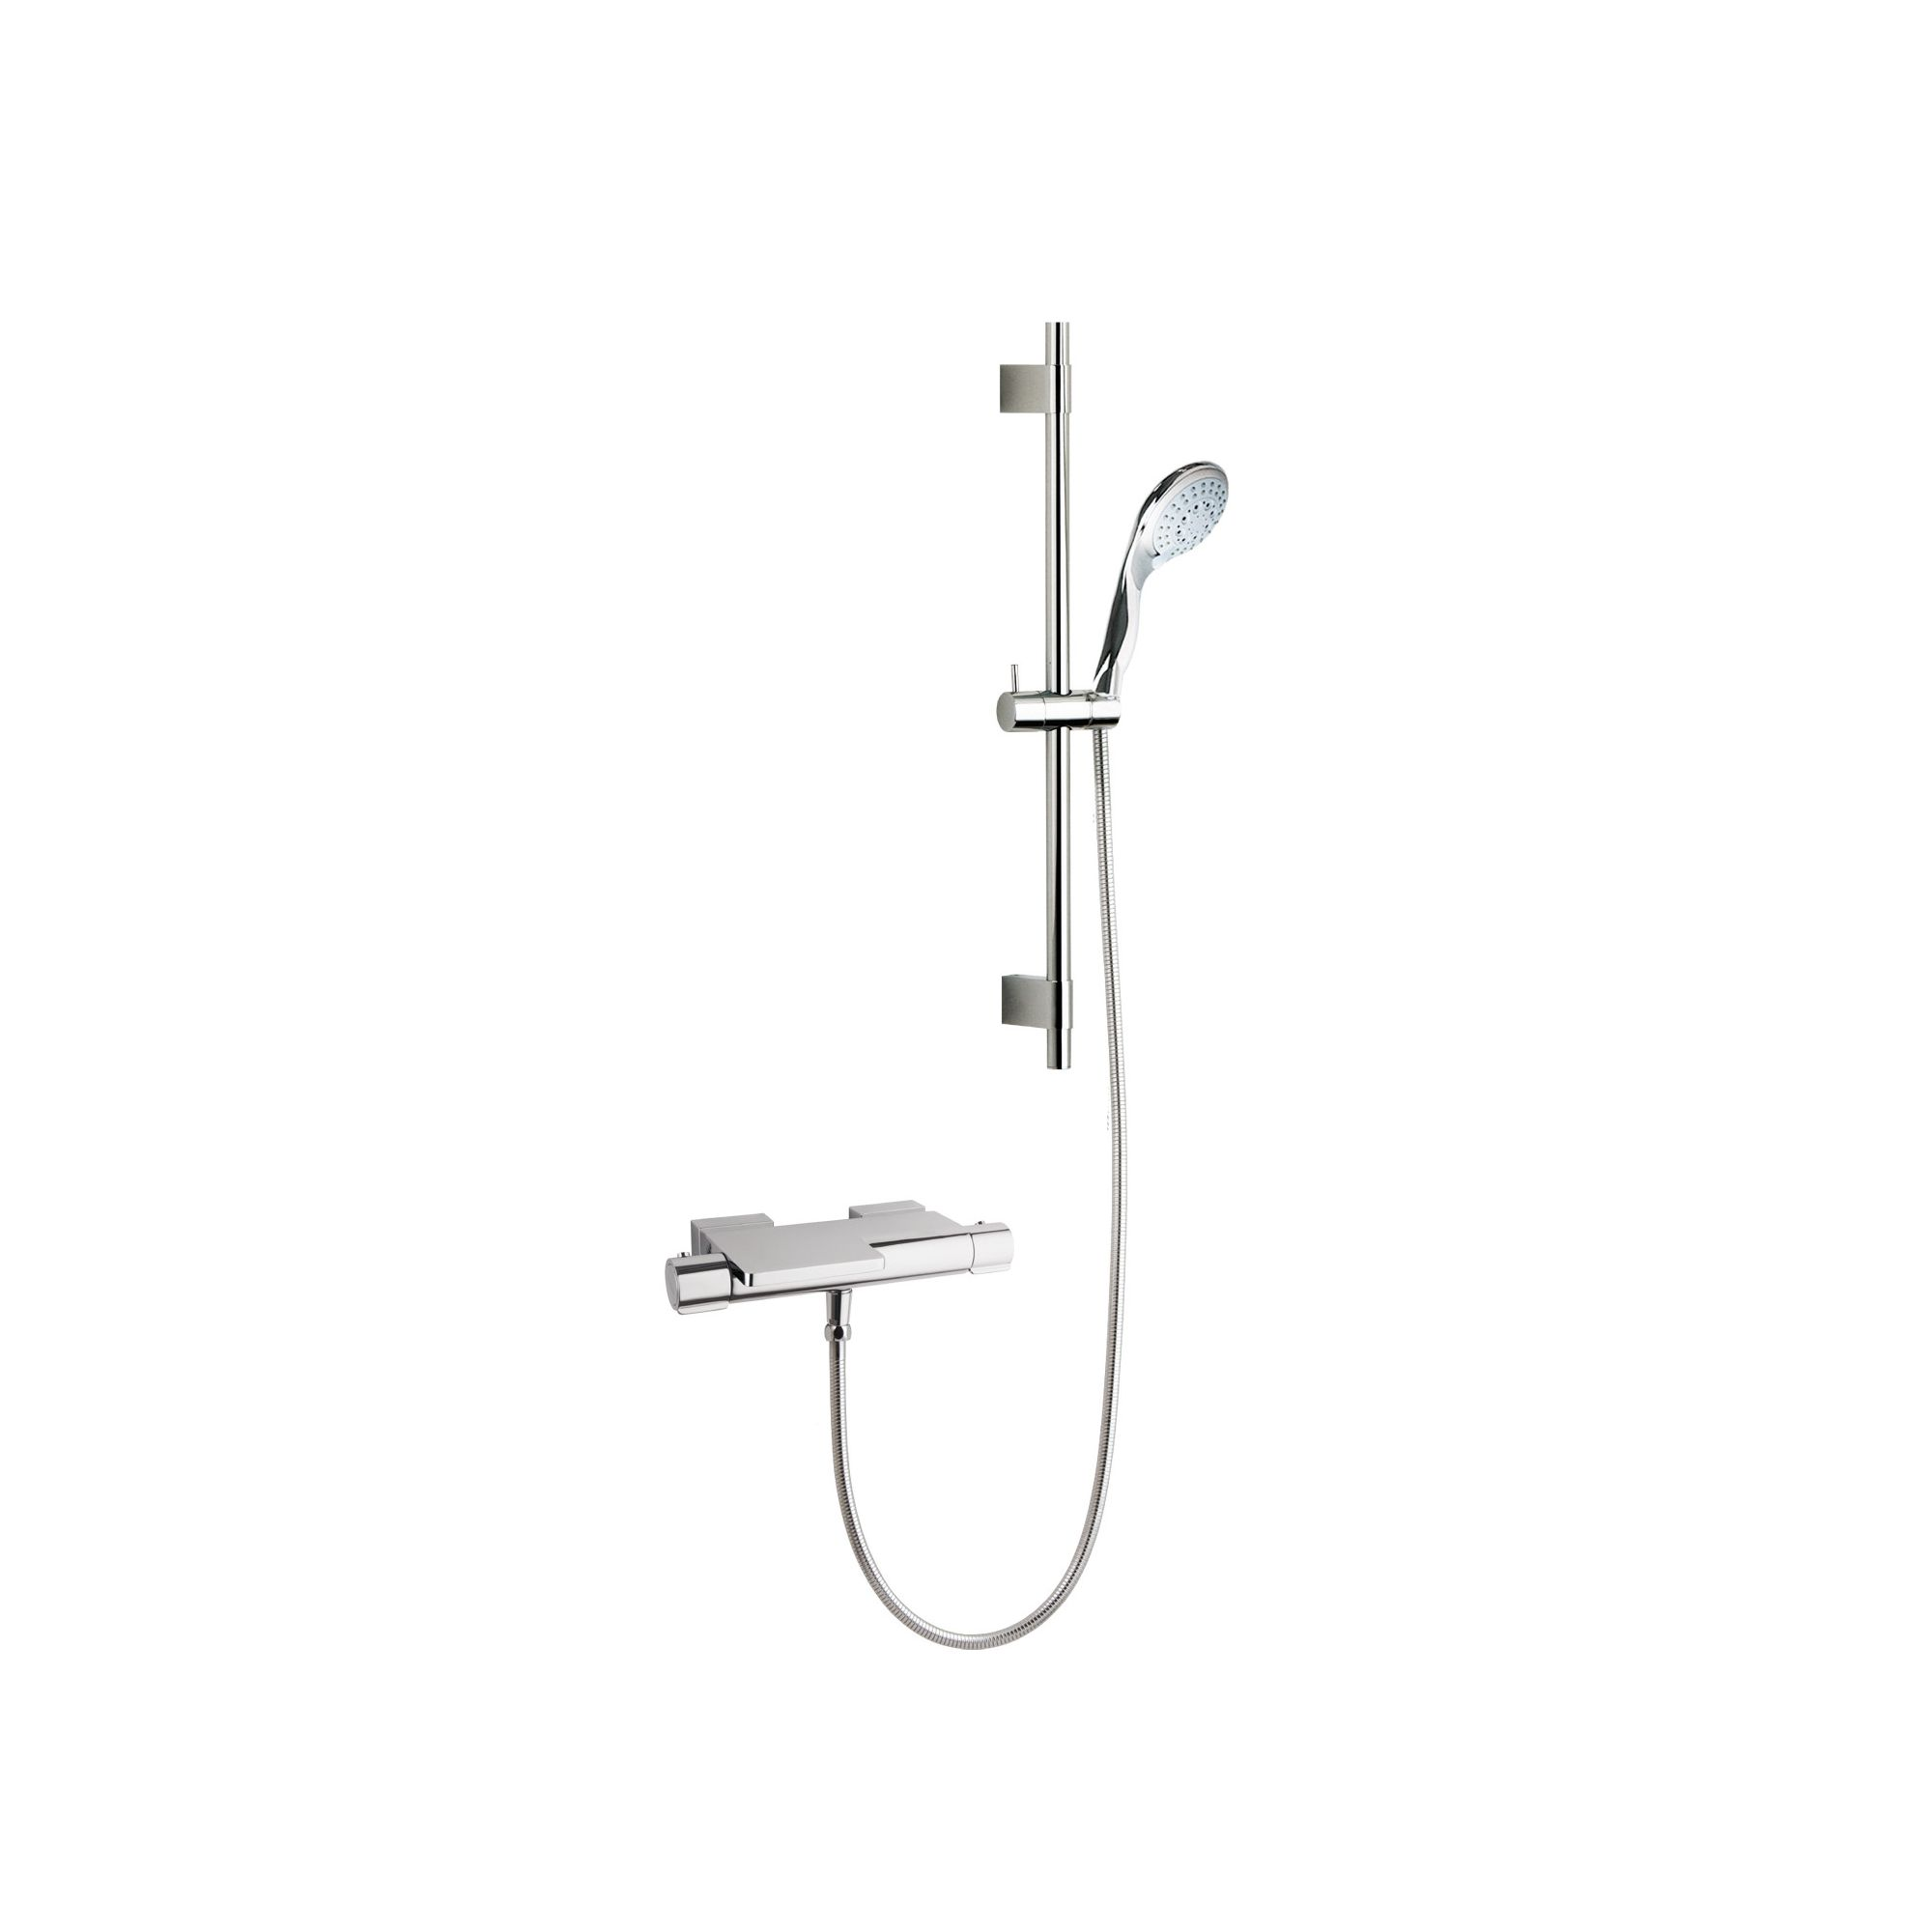 Ramon Soler Thermoarola Exposed Thermostatic Bath/Shower Mixer with Jupiter Shower Kit at Tescos Direct